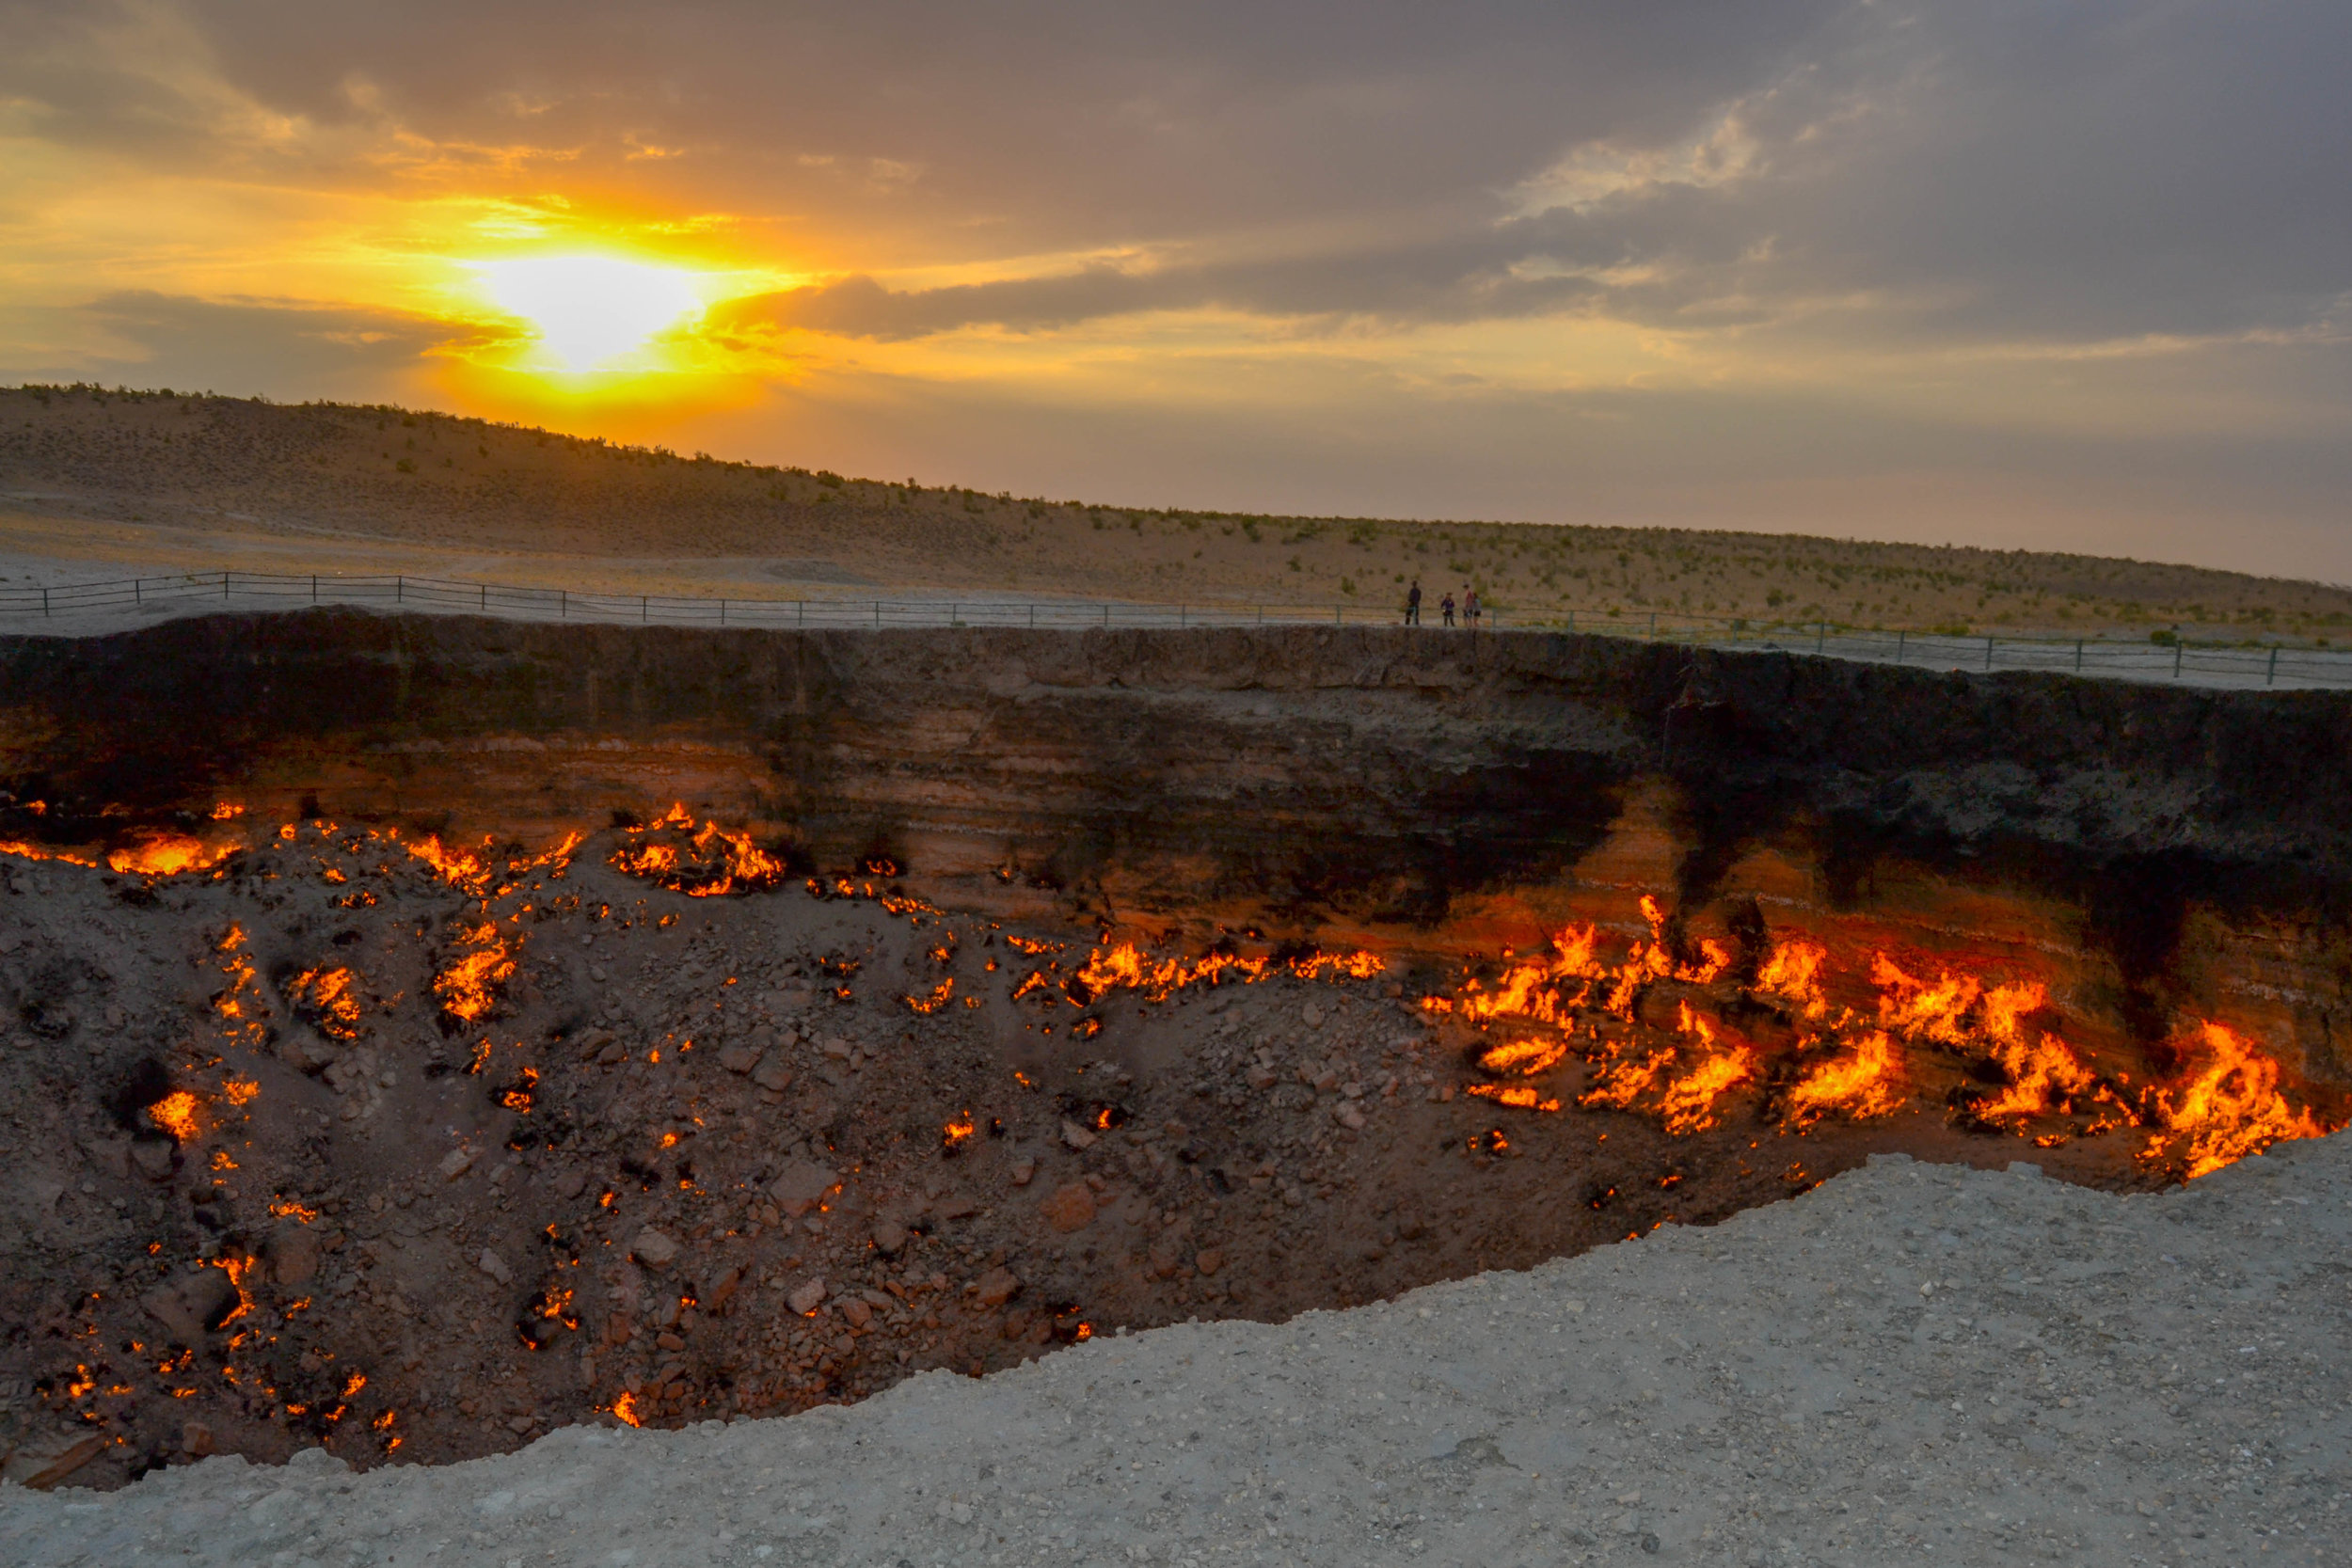 Sunset at the Crater